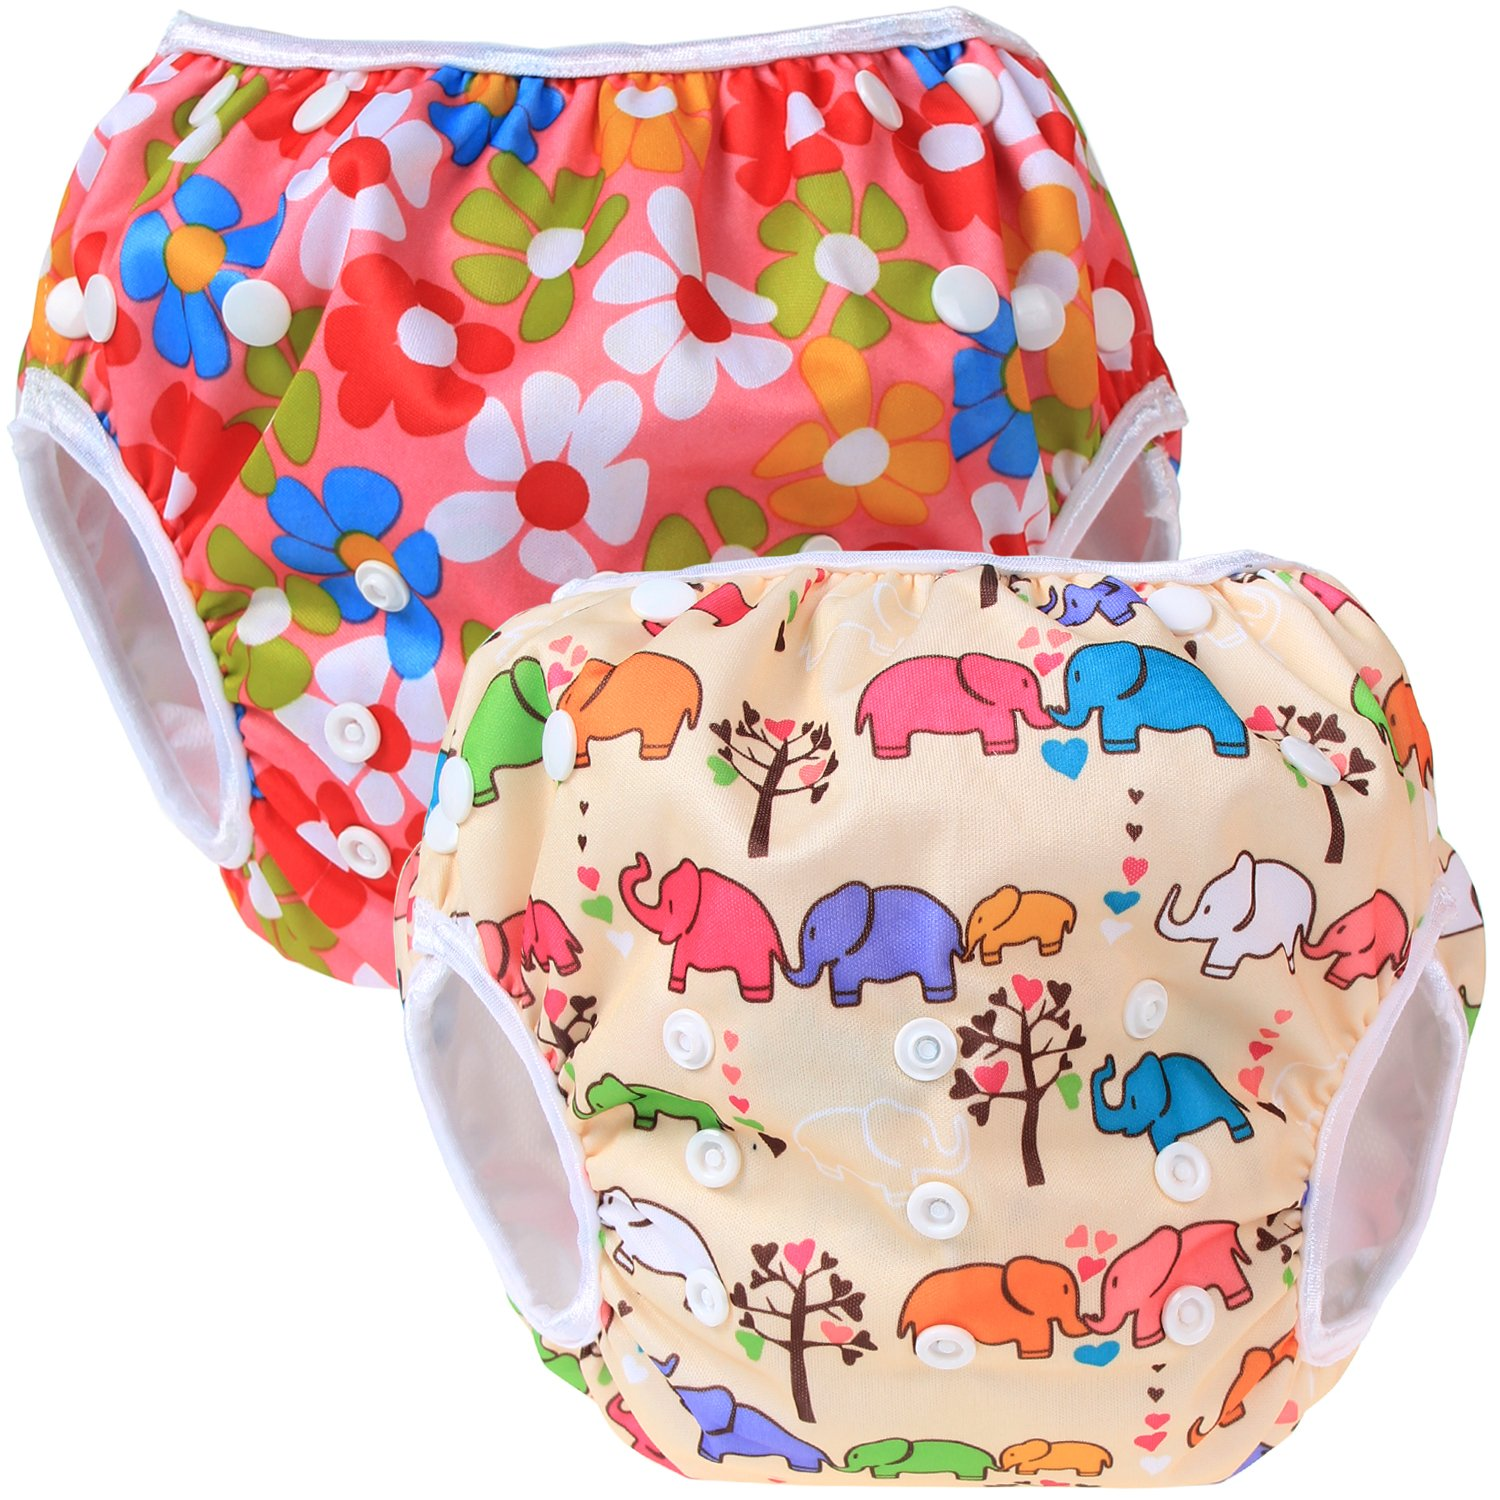 Washable and Adjustable Comfortable Teamoy Reusable Swim Nappy for Baby Boys/& Girls 2 Packs Ideal for Swimming Lessons//Holiday